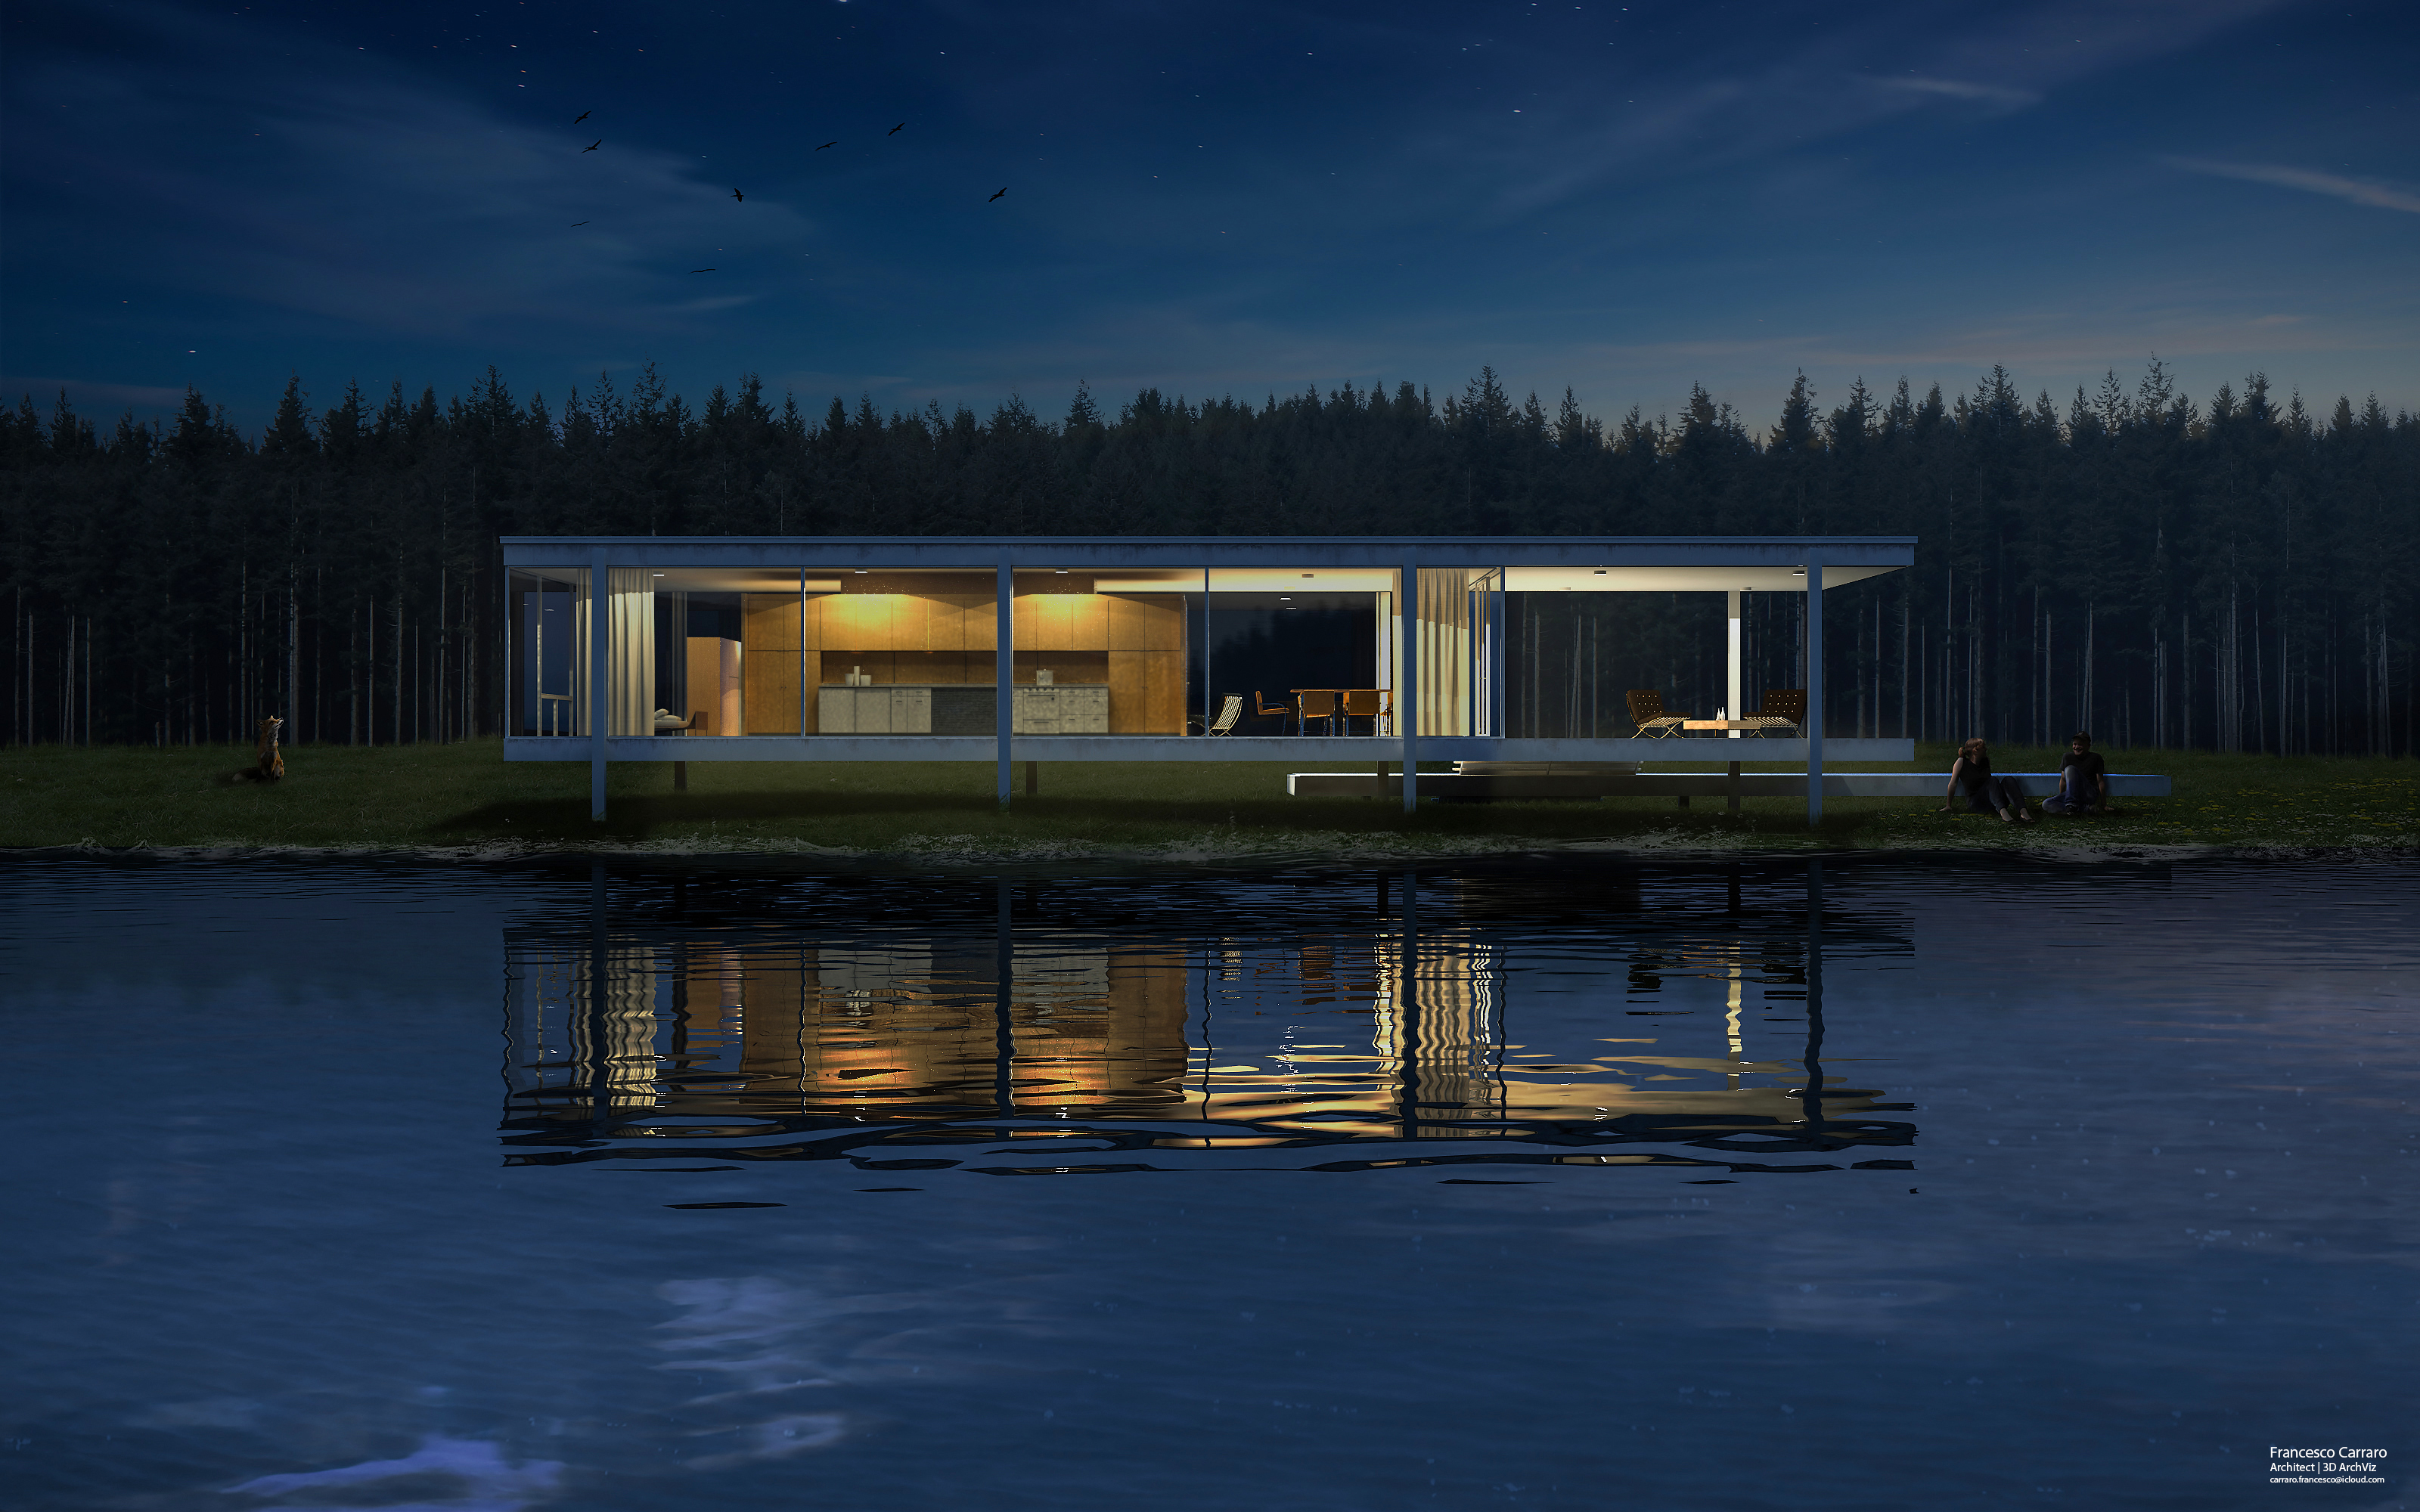 347199452500032961 as well 4268191656 moreover La Maison Du Lac Talloires in addition Suggestion Farnsworth House furthermore Dsc04016. on by the lake house